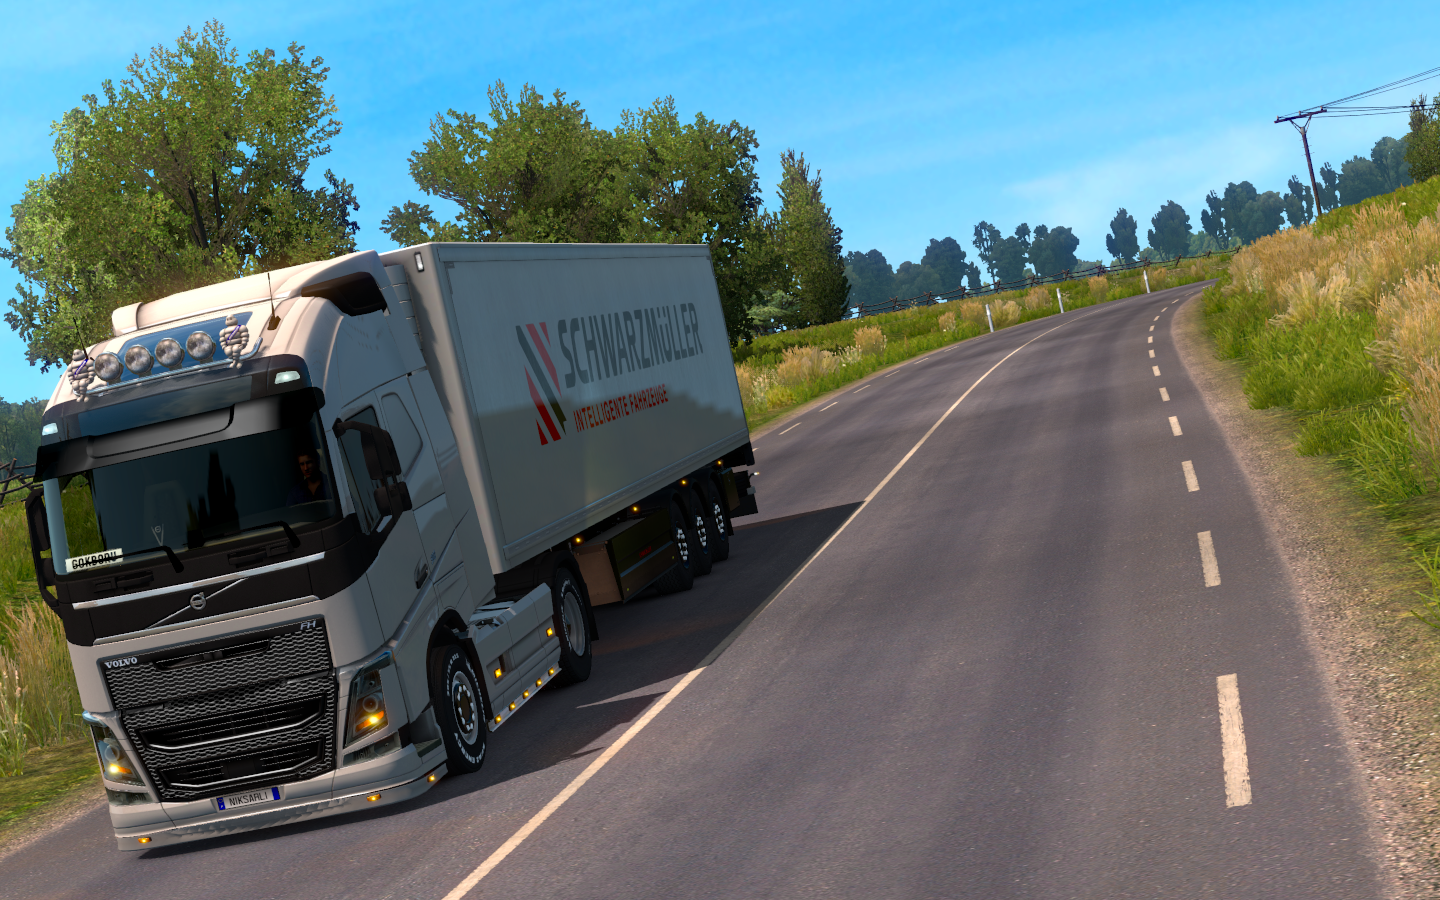 ets2_20190807_222055_00.png